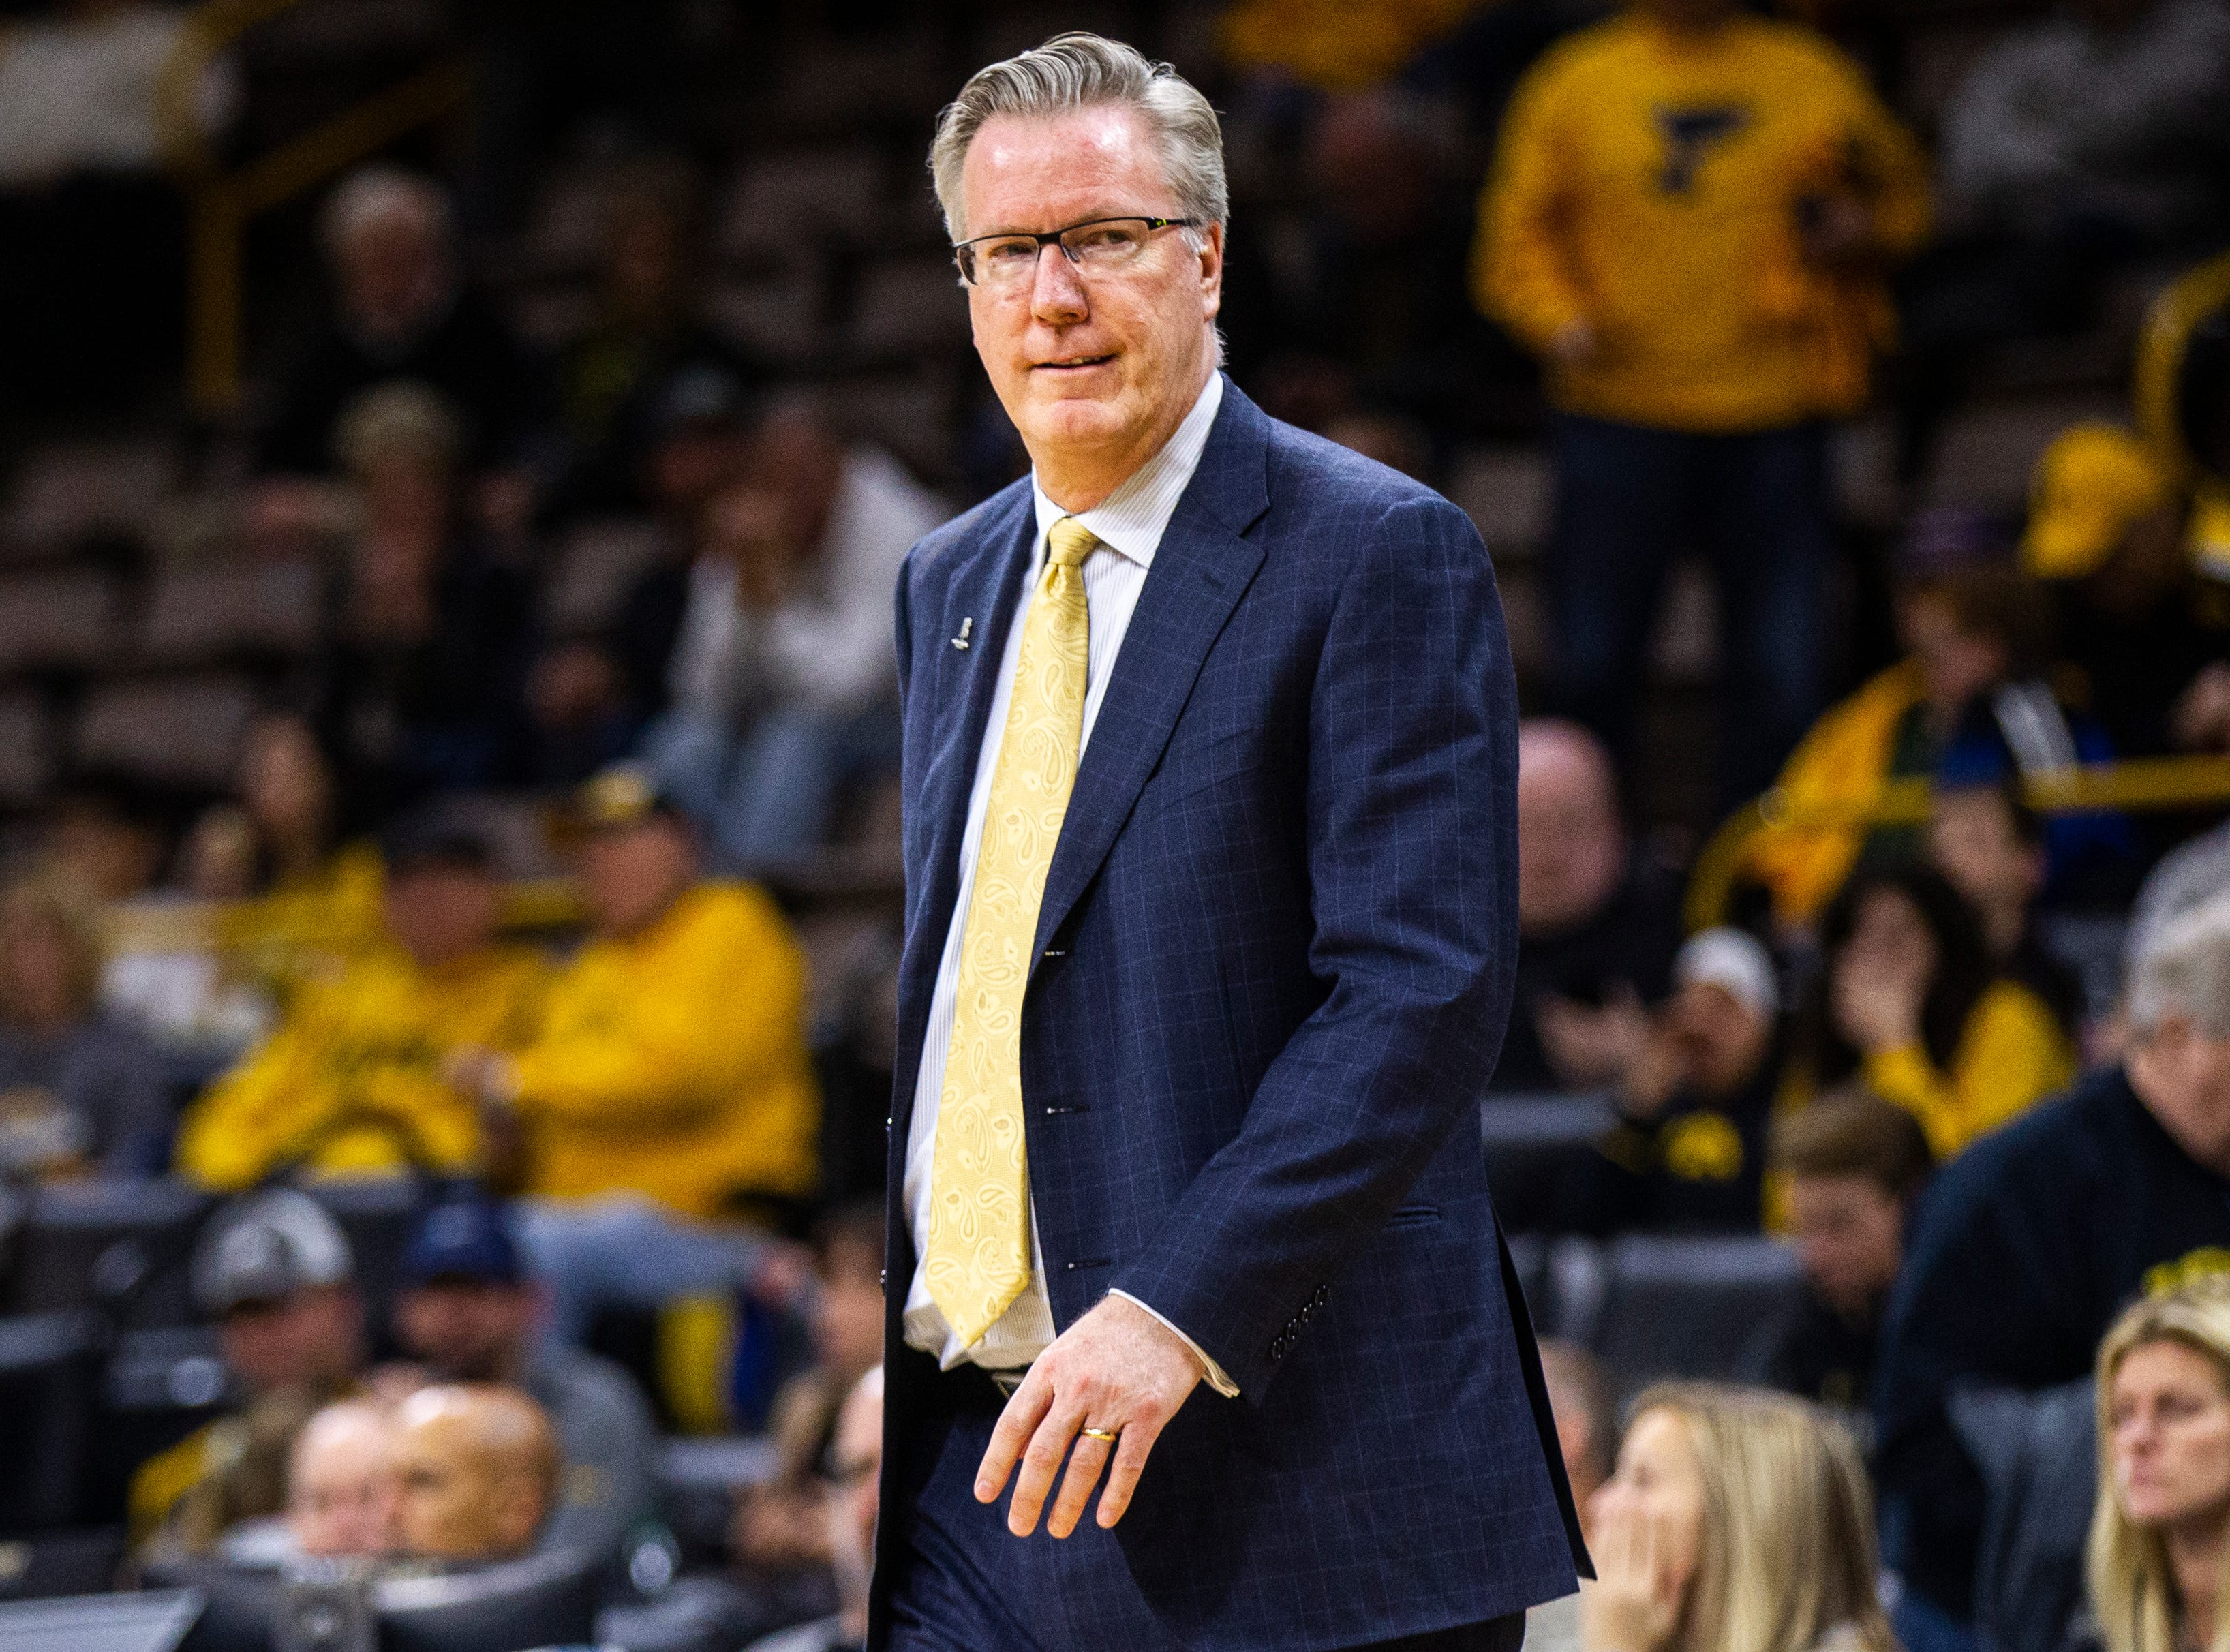 Iowa men's basketball head coach Fran McCaffery looks on during an NCAA men's basketball game on Wednesday, Nov. 21, 2018, at Carver-Hawkeye Arena in Iowa City.